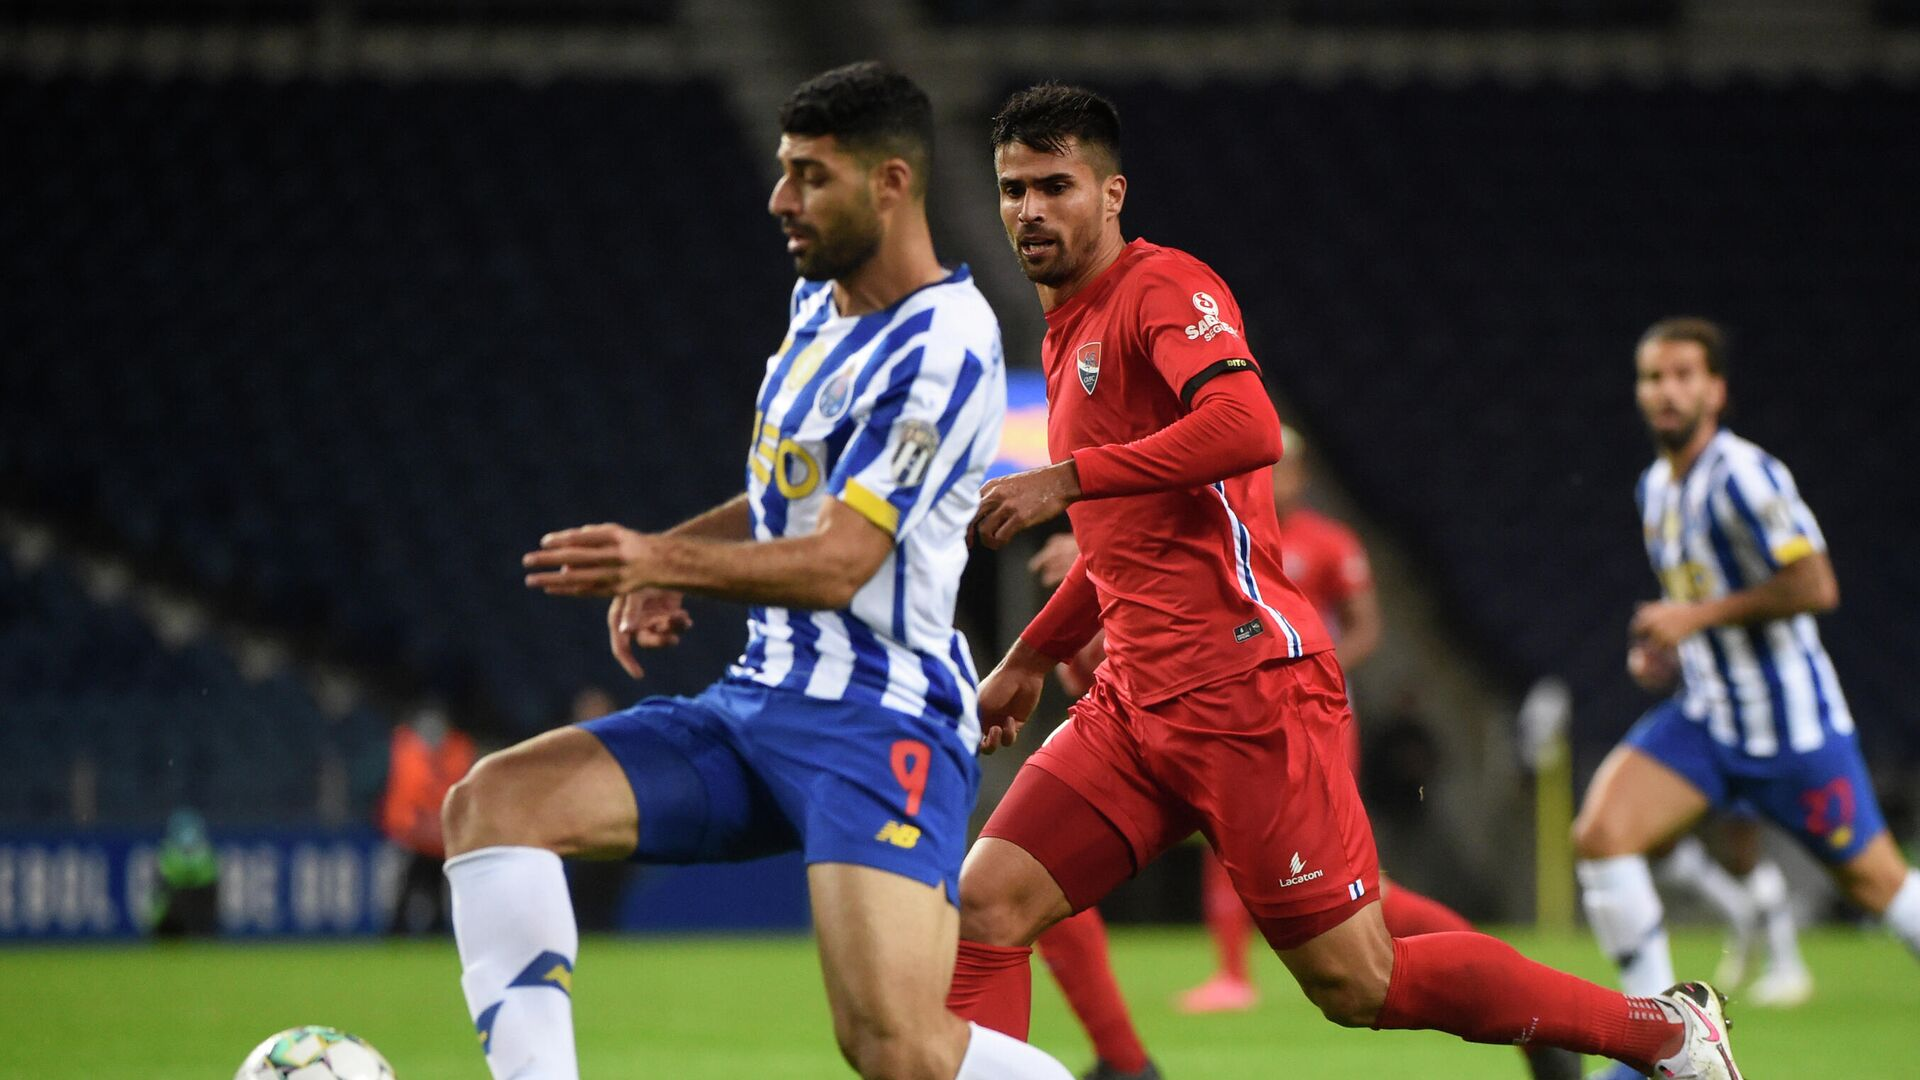 FC Porto's Iranian forward Mehdi Taremi (L) vies with Gil Vicente's Brazilian defender Rodrigao during the Portuguese League football match between Porto and Gil Vicente at the Dragao stadium in Porto on October 24, 2020. (Photo by MIGUEL RIOPA / AFP) - РИА Новости, 1920, 25.10.2020